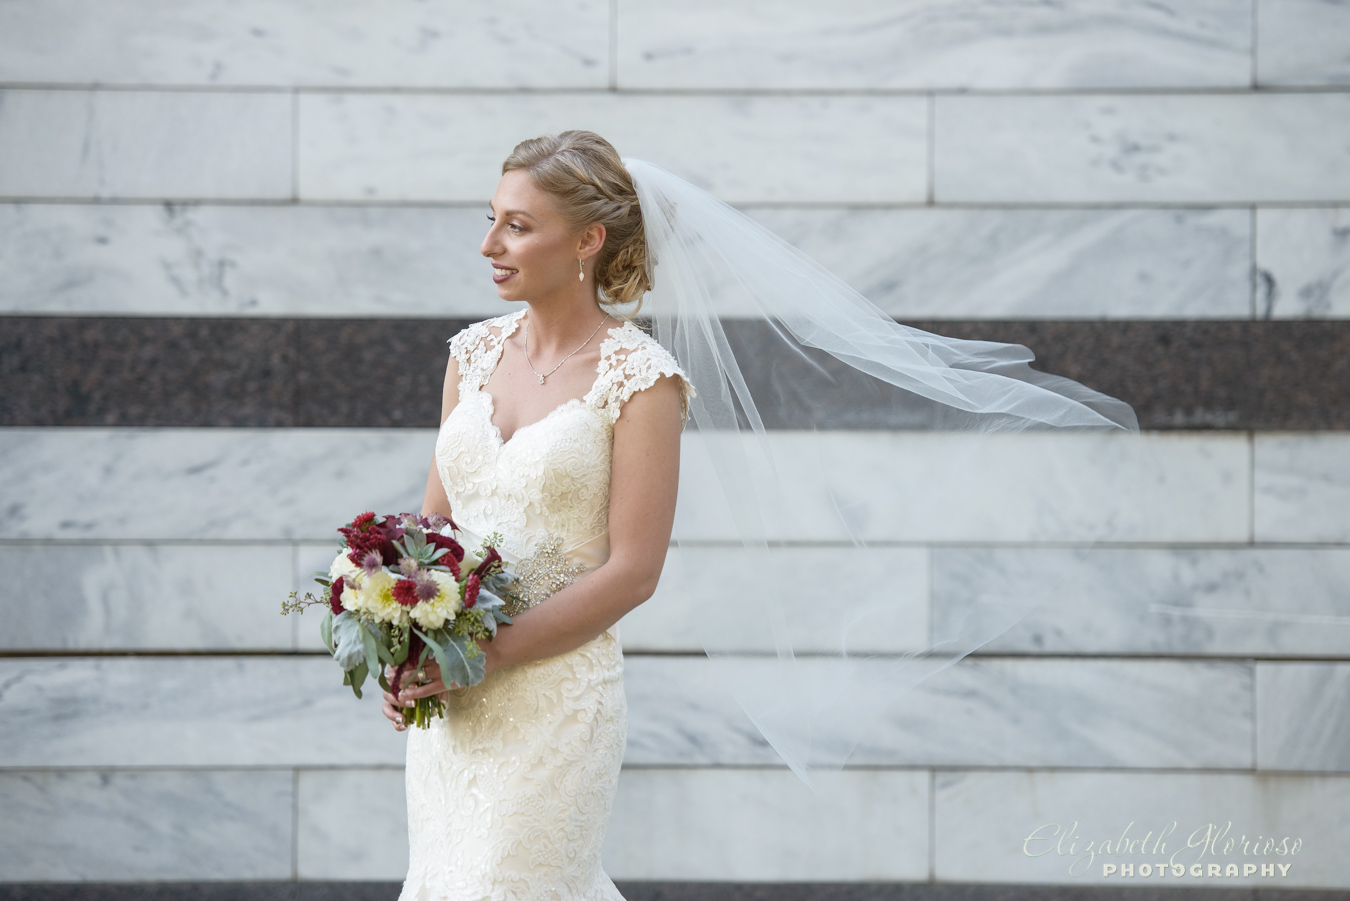 Bride at Cleveland Museum of Art